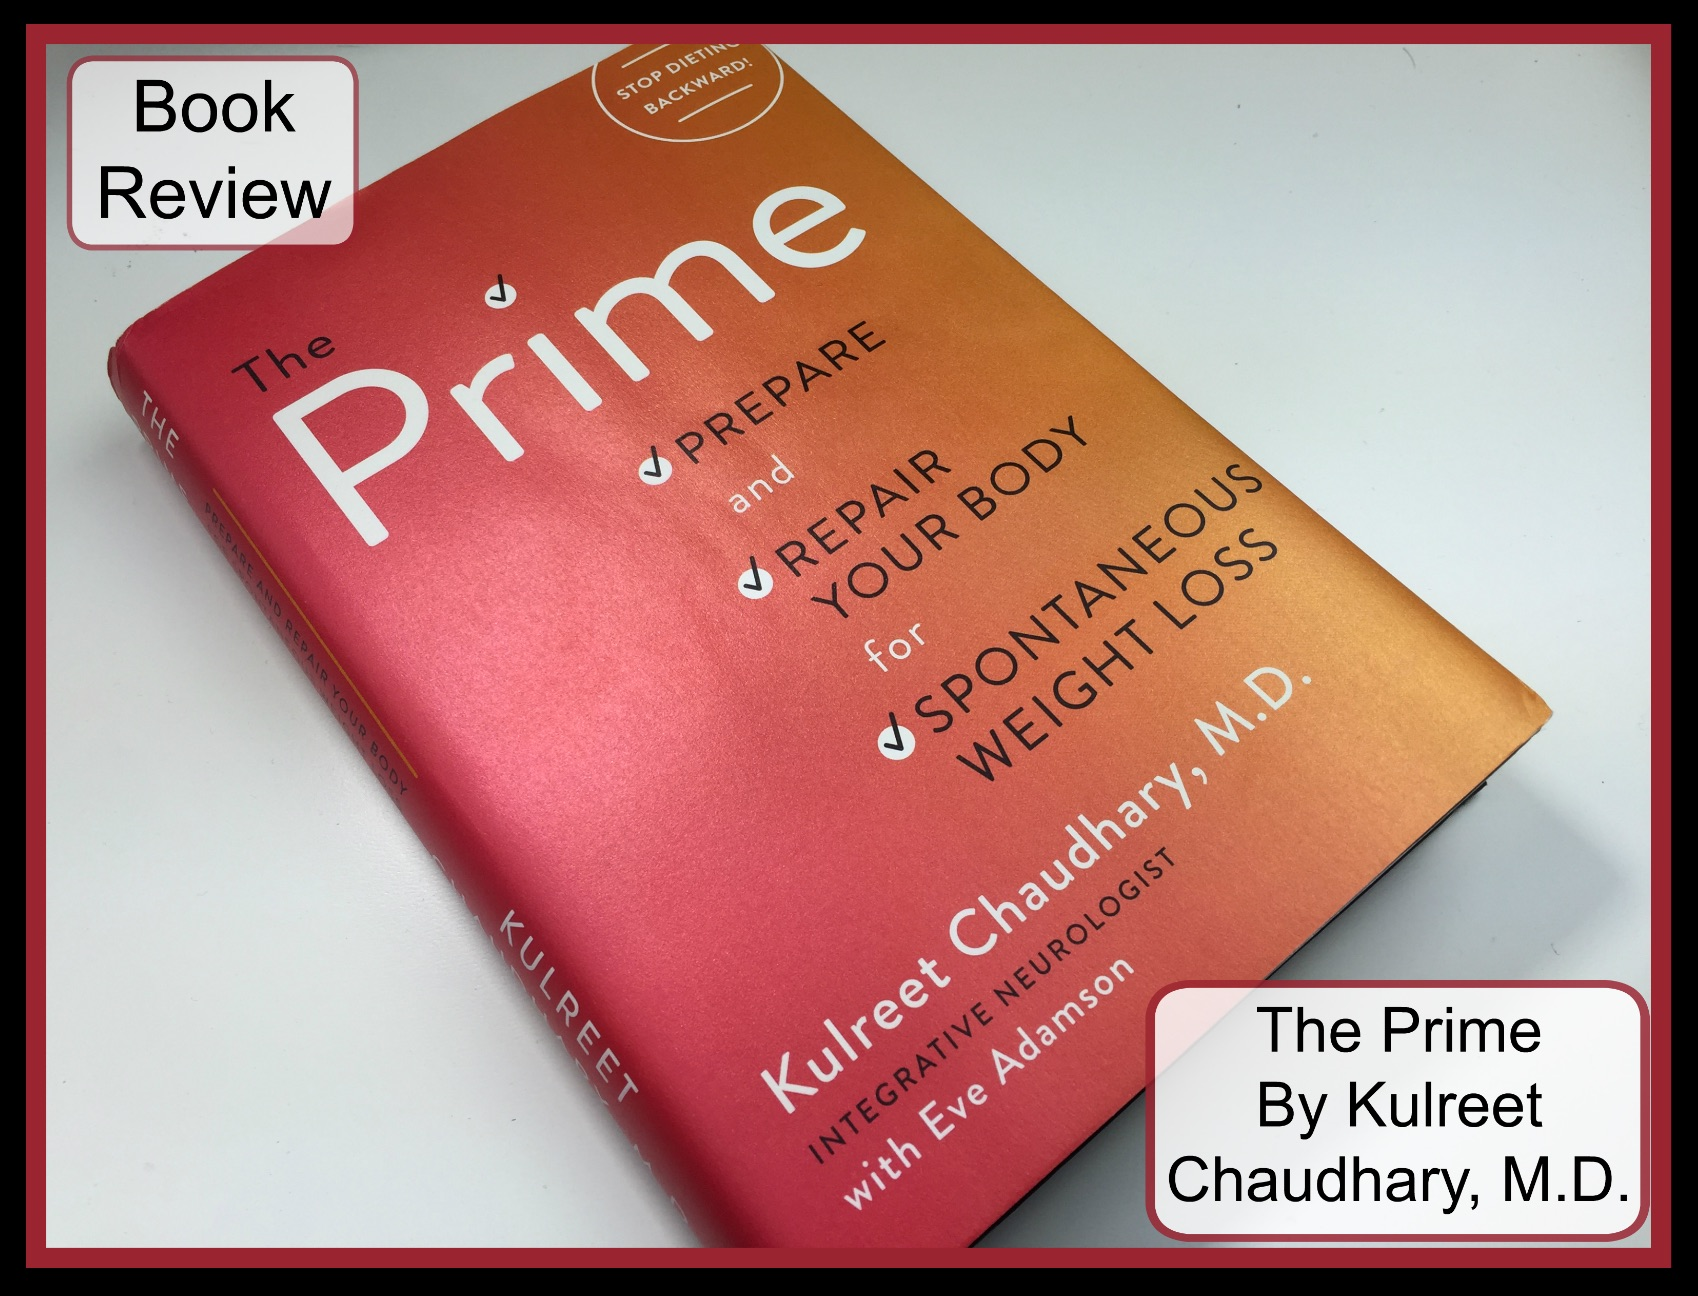 #ThePrime #Book #Giveaway #ad